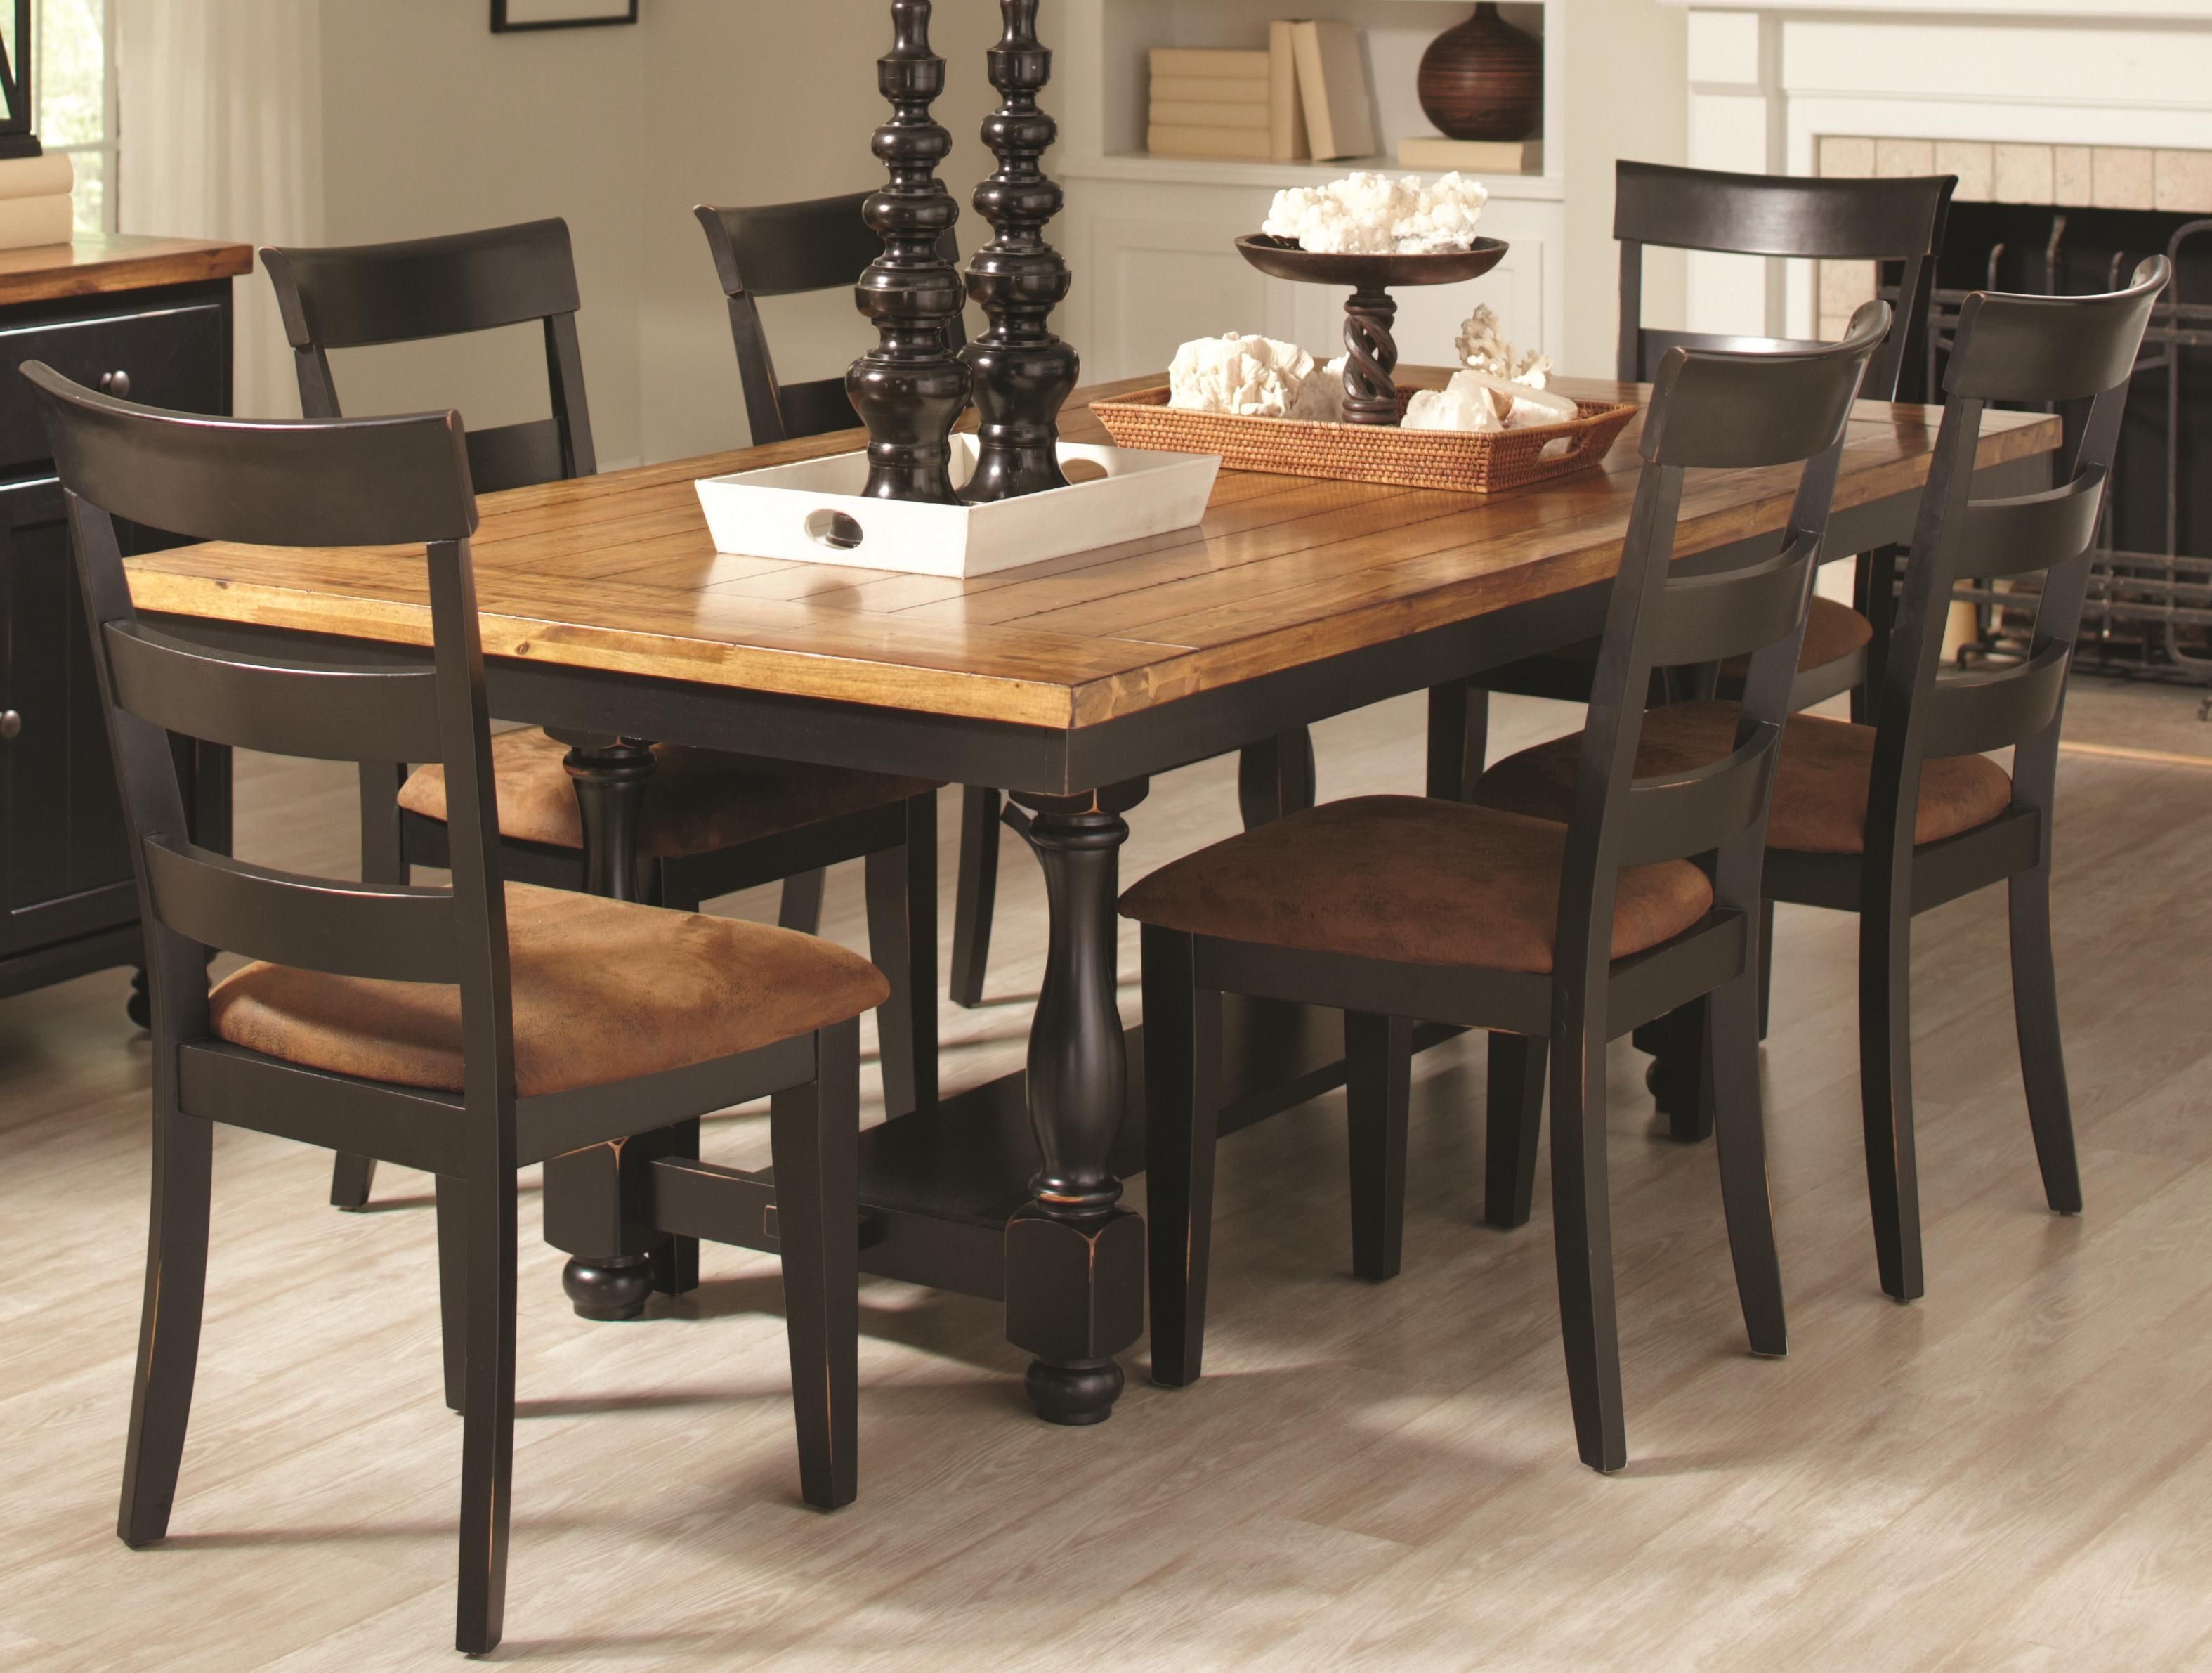 Charlotte 7 Piece Dining Set With Rectangular Table And Ladder Back Chairs  Quality Furniture